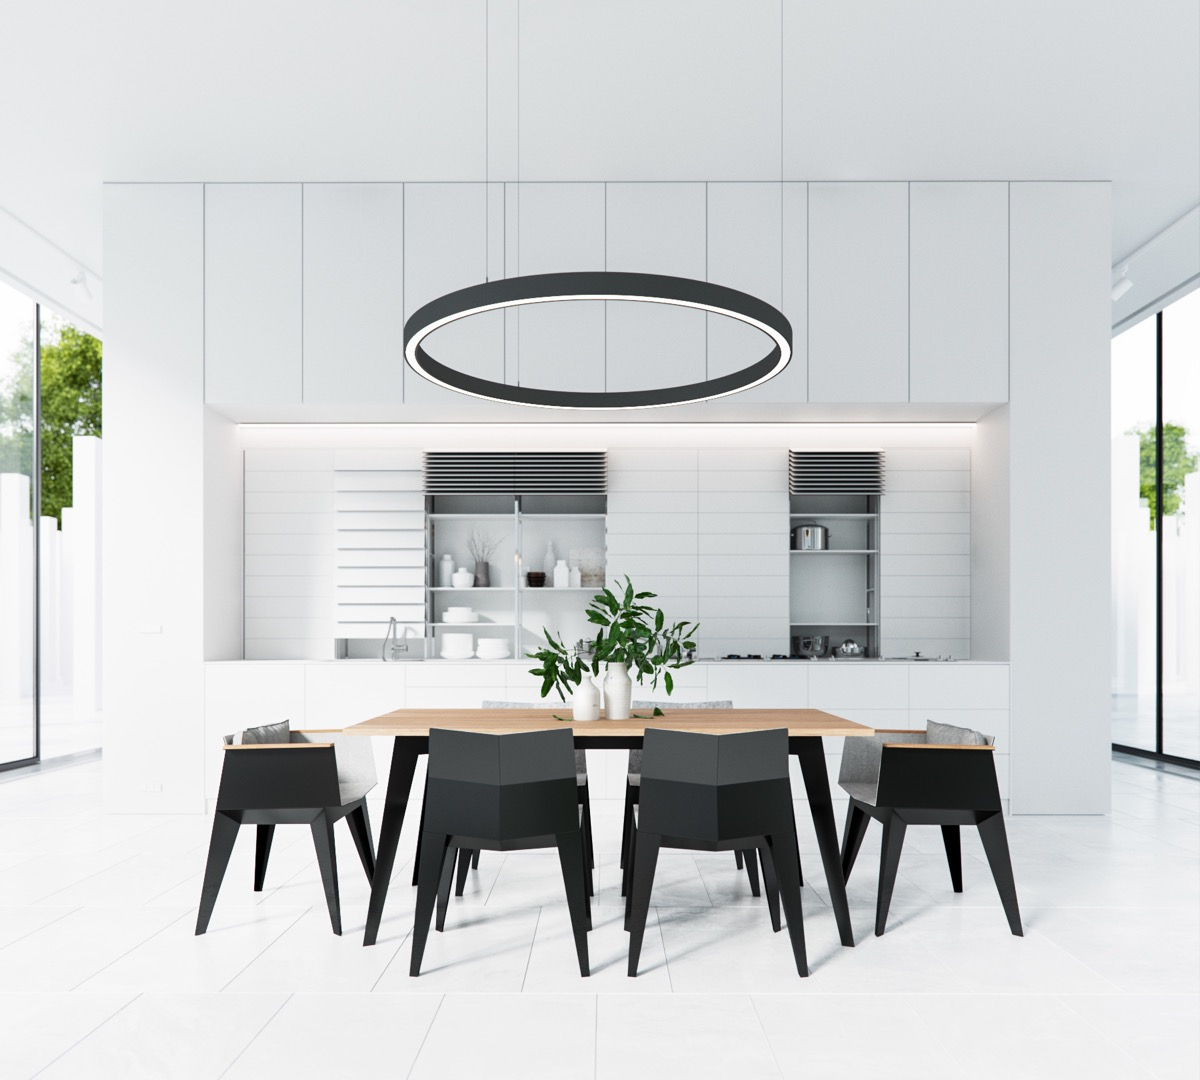 circular-pendant-light-greenery-vase-black-and-white-dining-room